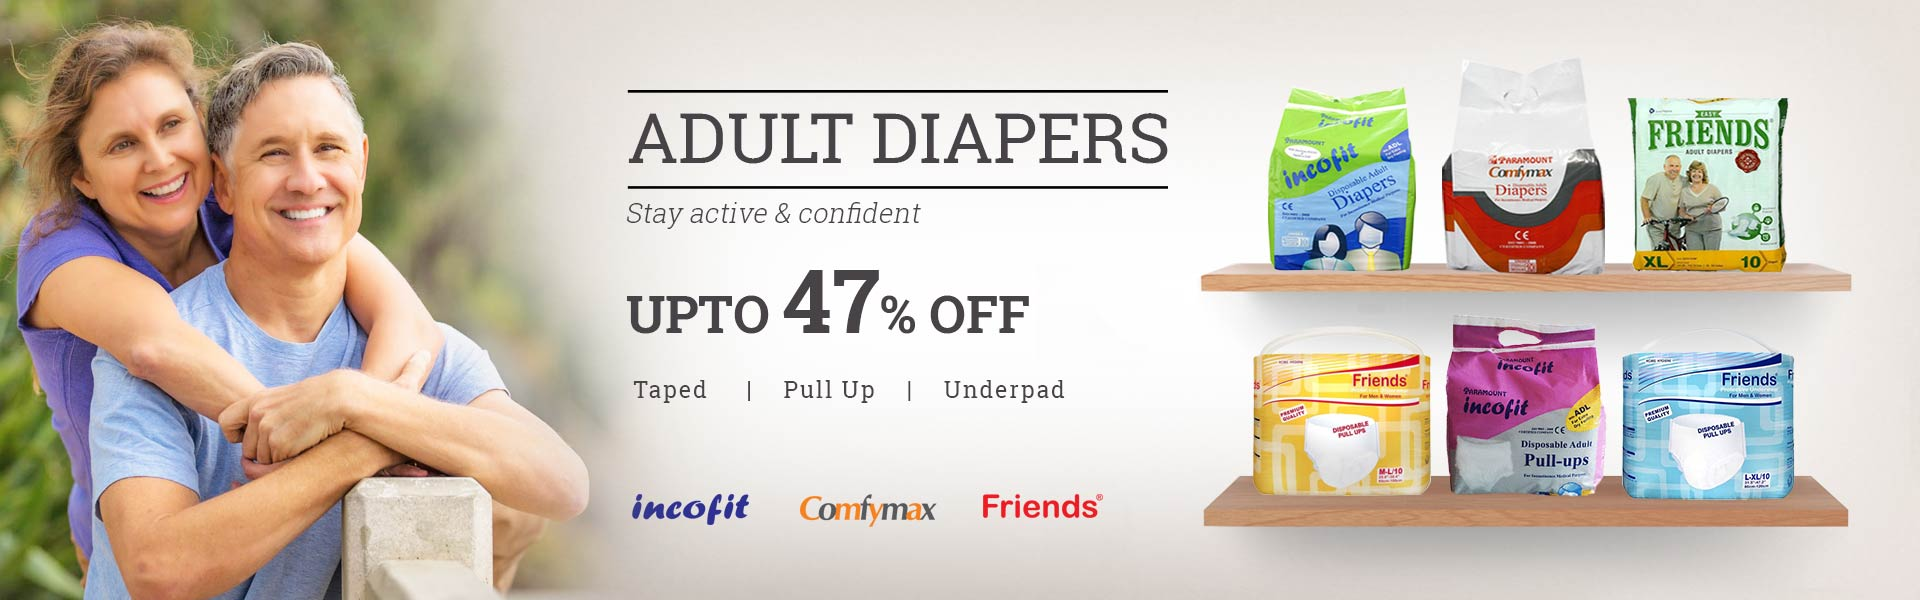 adult-diaper-deals-banner